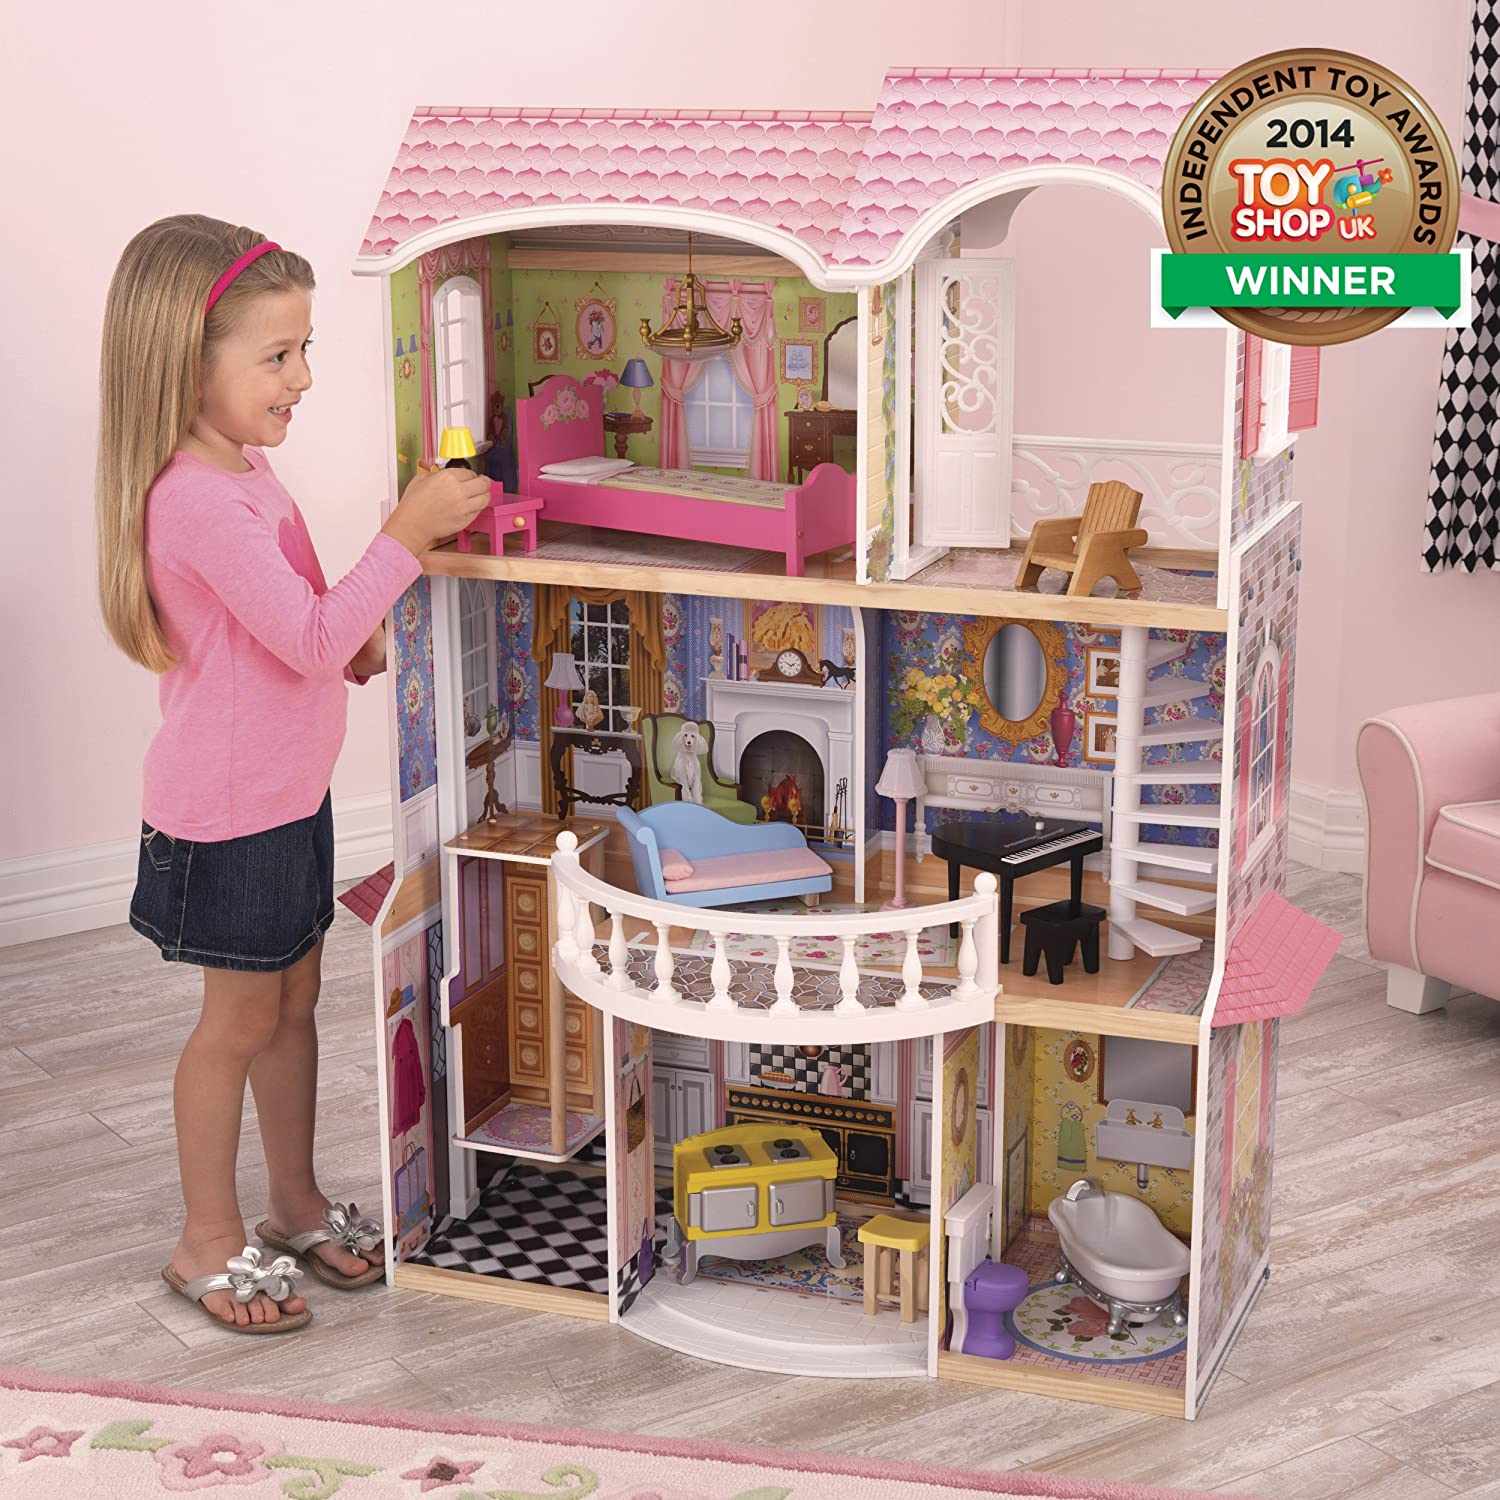 Amazoncom KidKraft Magnolia Mansion Dollhouse with Furniture